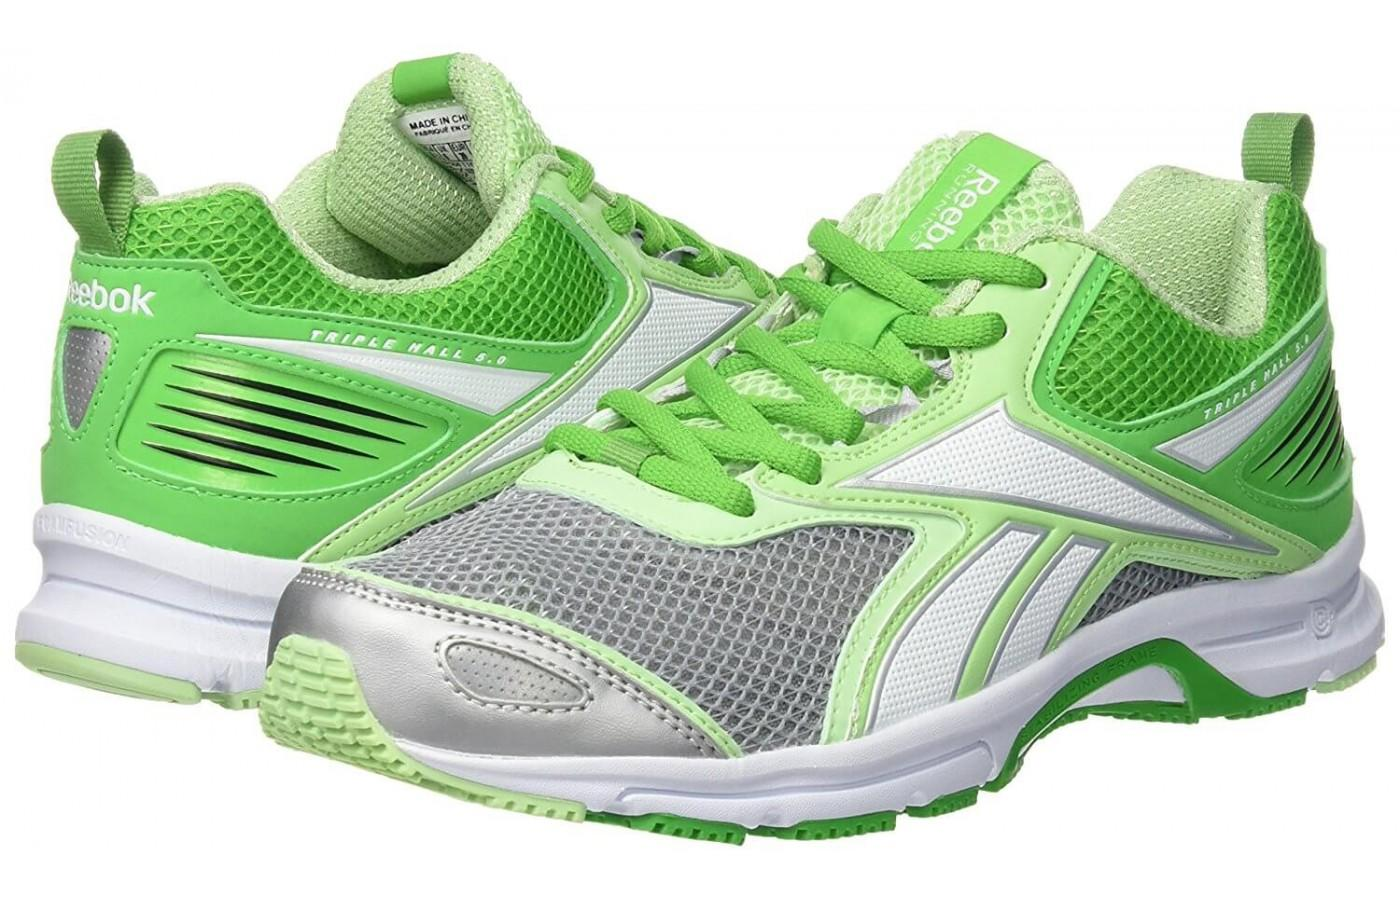 The Reebok TripleHall 5.0 is also good for individuals who stand for long periods of time